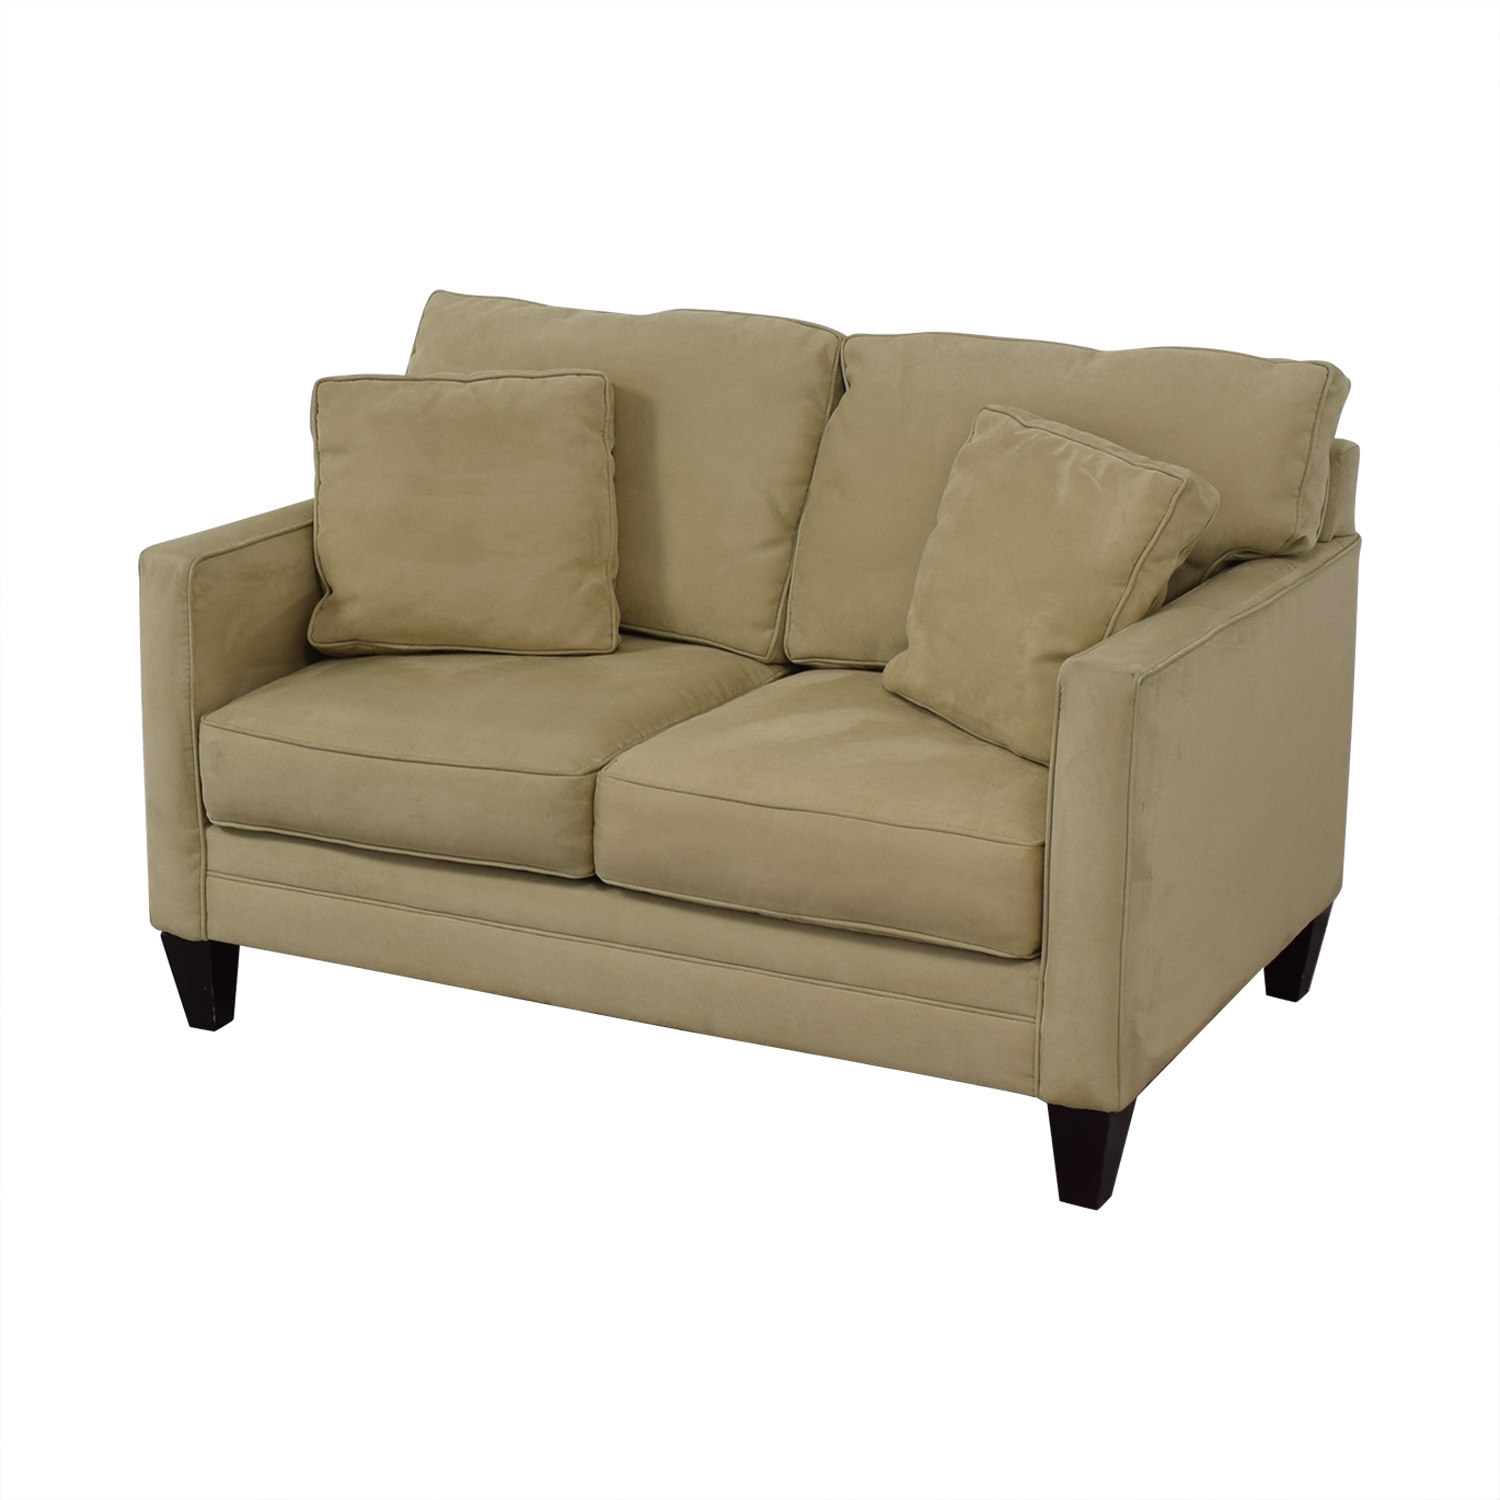 Bauhaus Furniture Bauhaus Furniture Suede Loveseat Loveseats